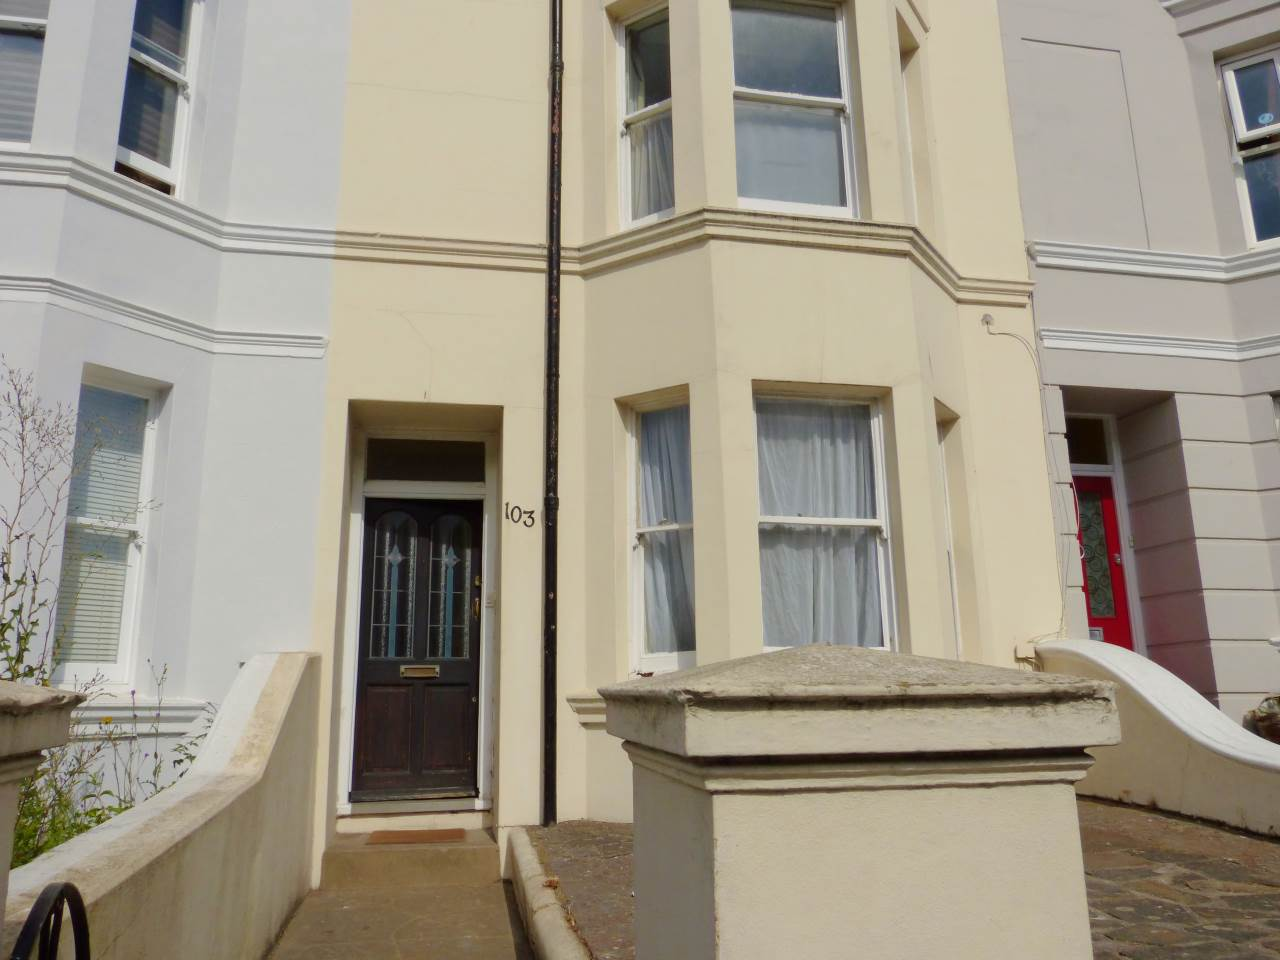 6 bed house to rent in Brighton, BN2